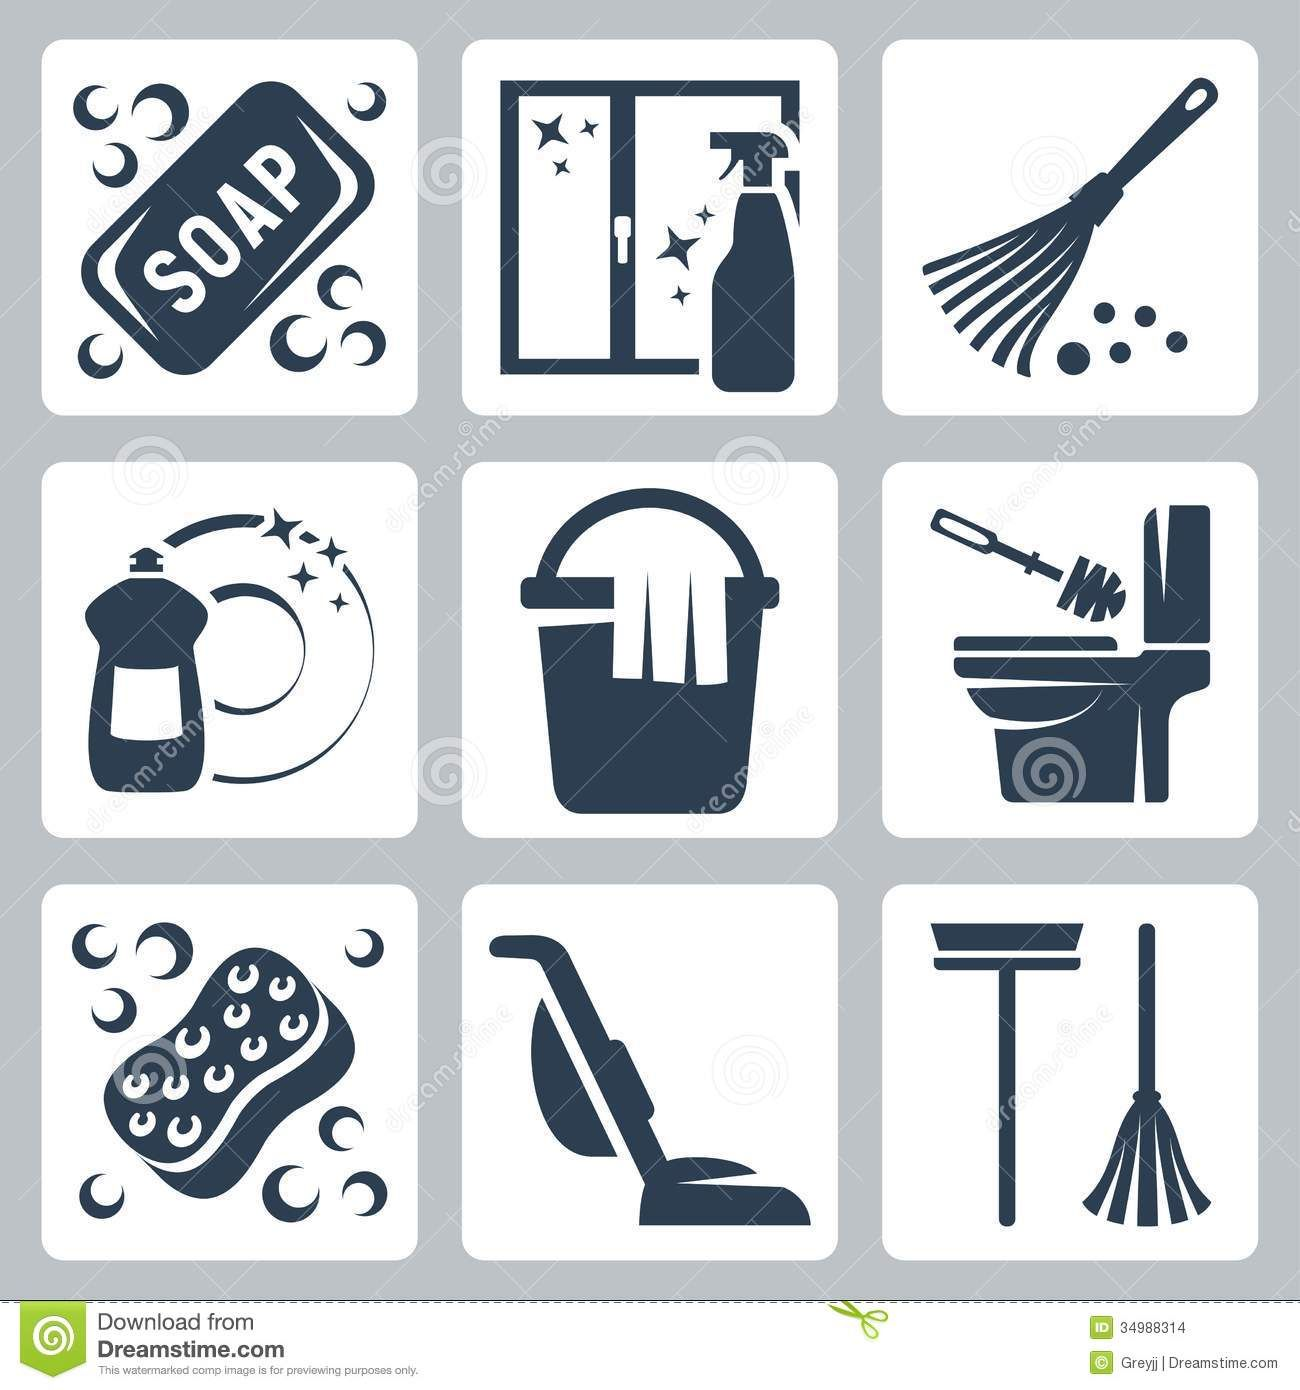 Vector Cleaning Icons Set Soap Window Cleaner Duster Dishwashing Liquid Bucket Cloth Toilet Brush Flush Toilet Cleaning Icons Window Cleaner Dishwashing Liquid